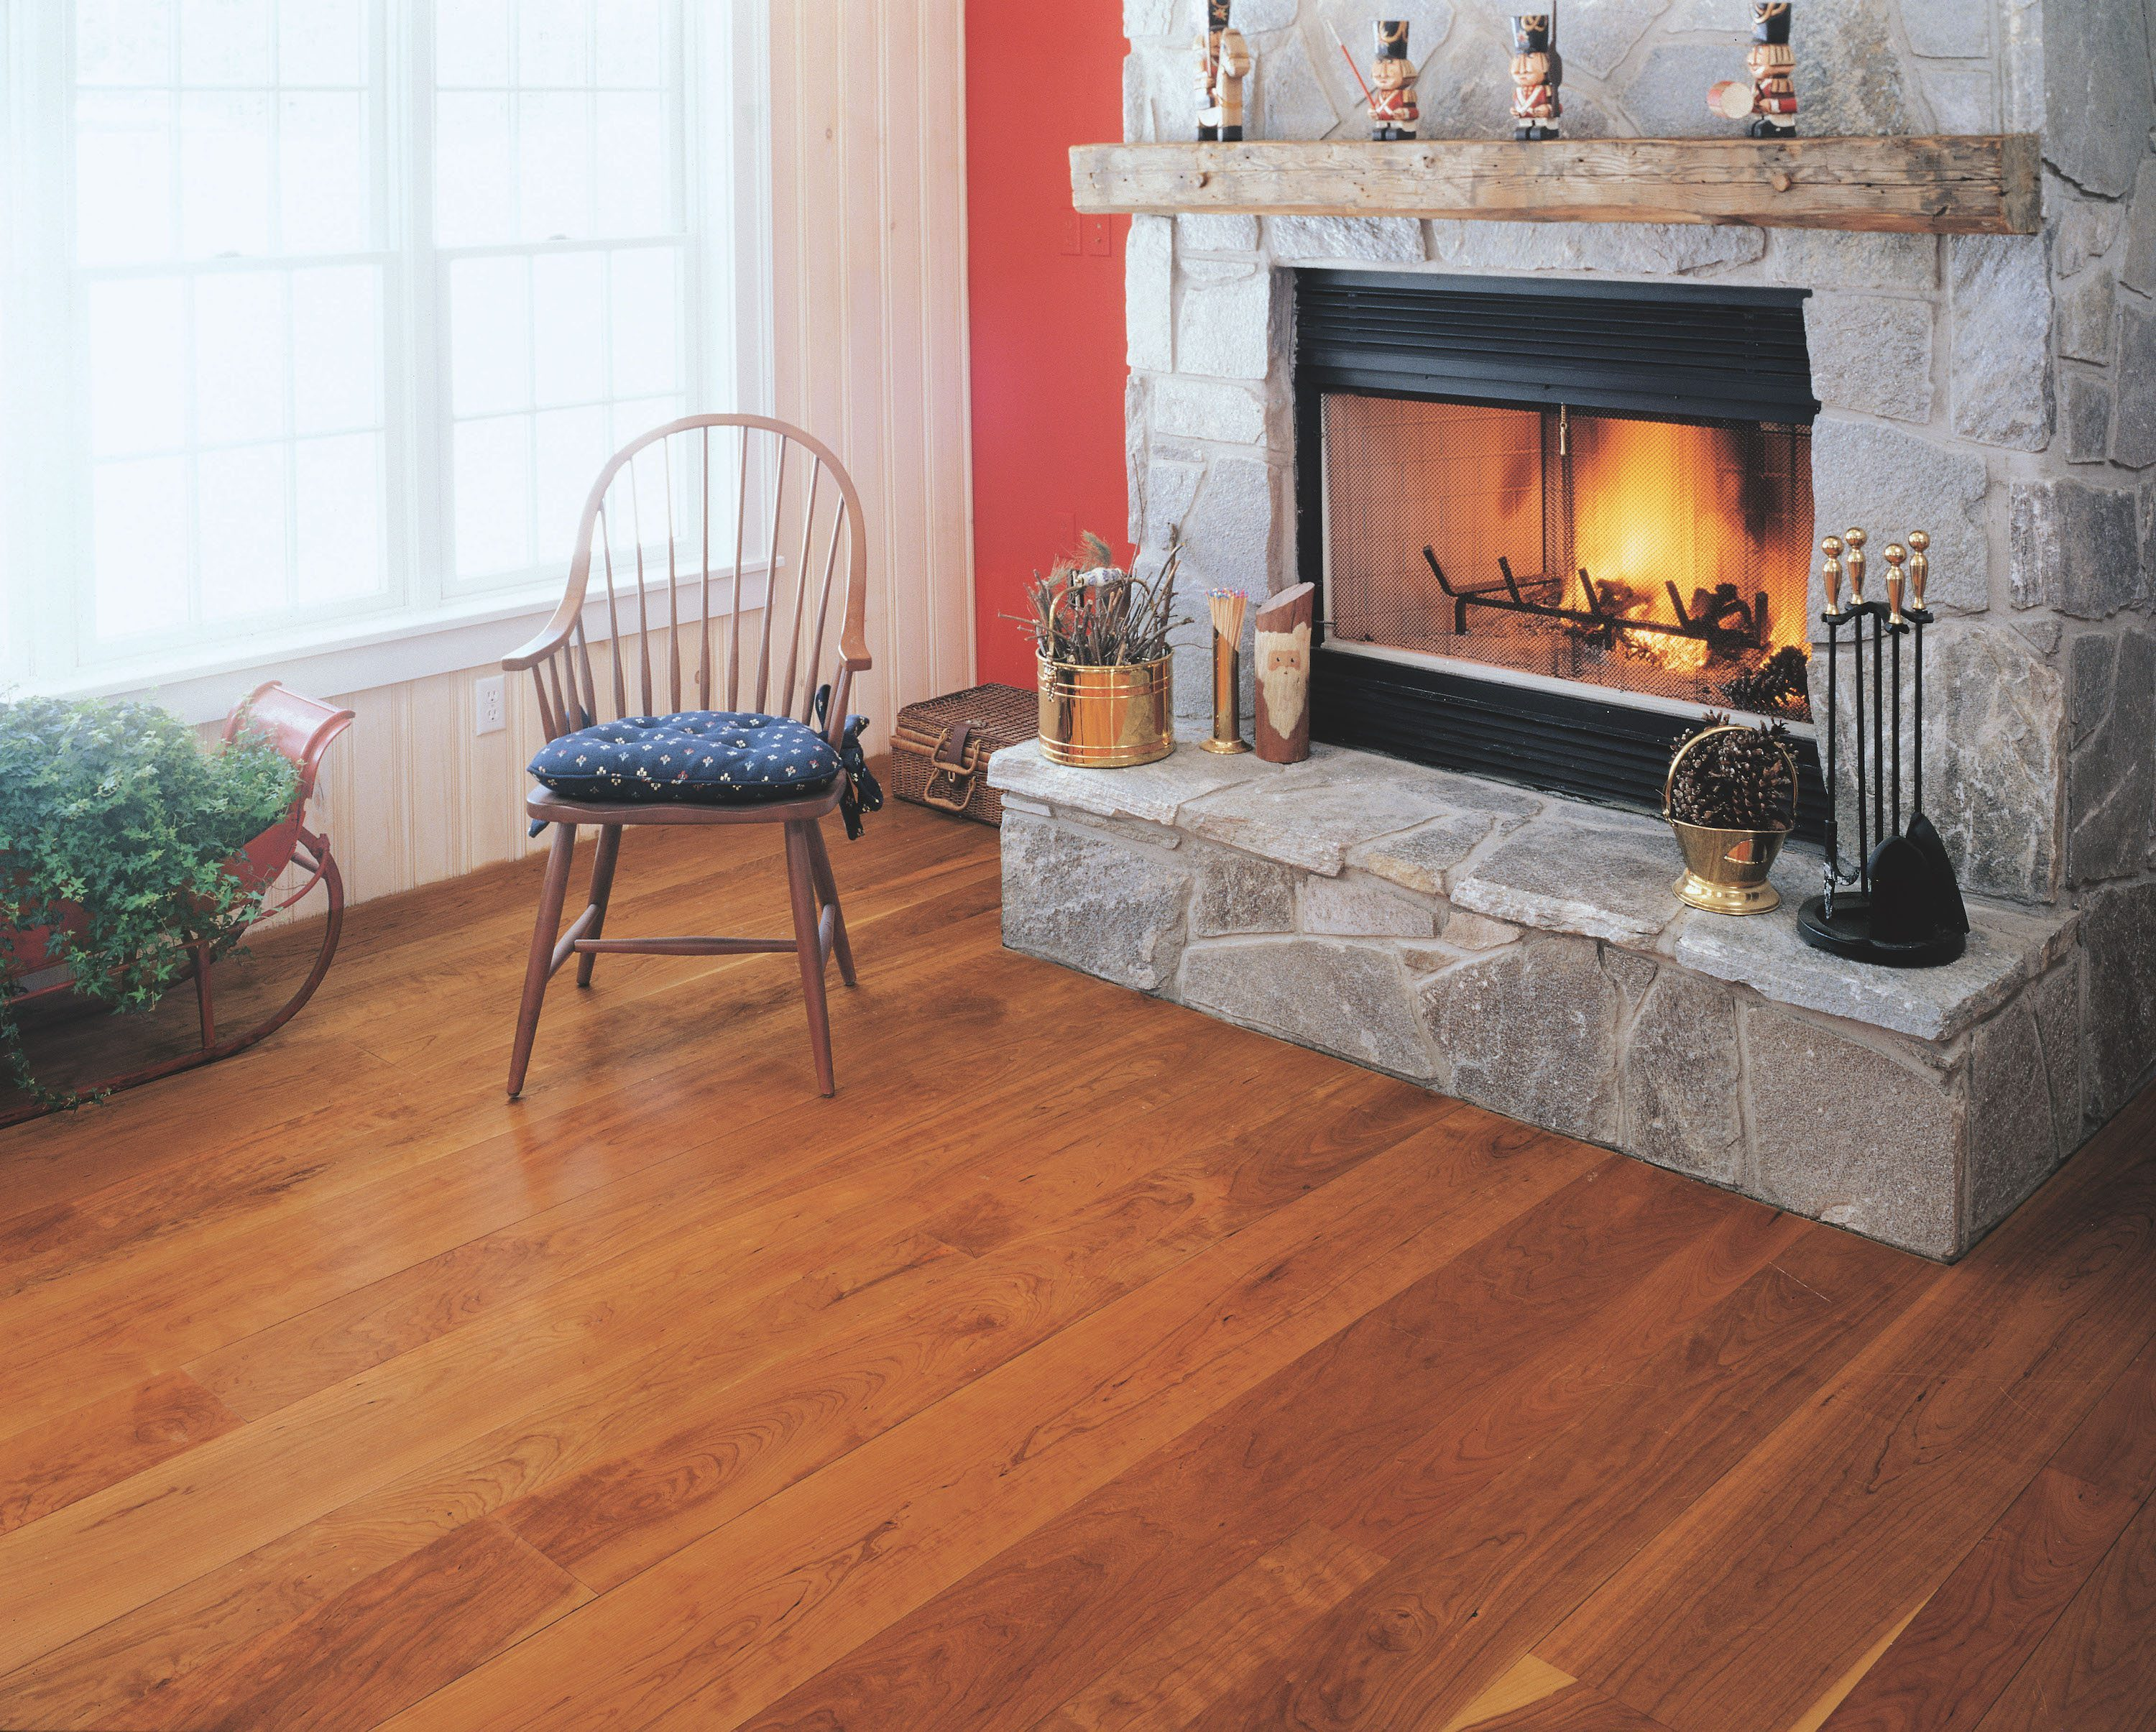 Cherry Wood Flooring With A Stone Fireplace